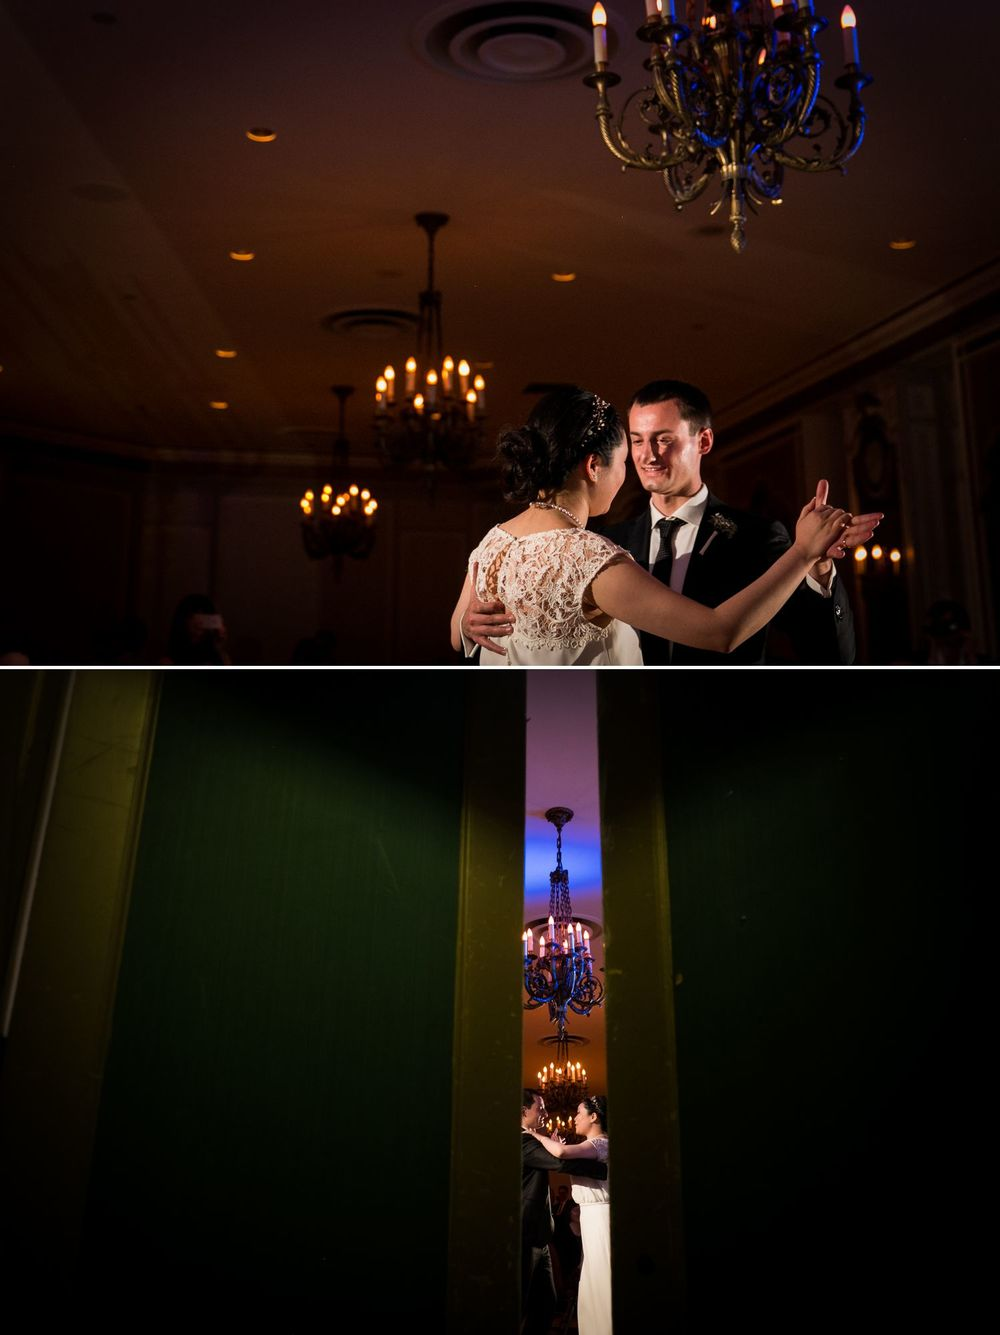 The bride and groom during their first dance during the reception at the Chateau Laurier